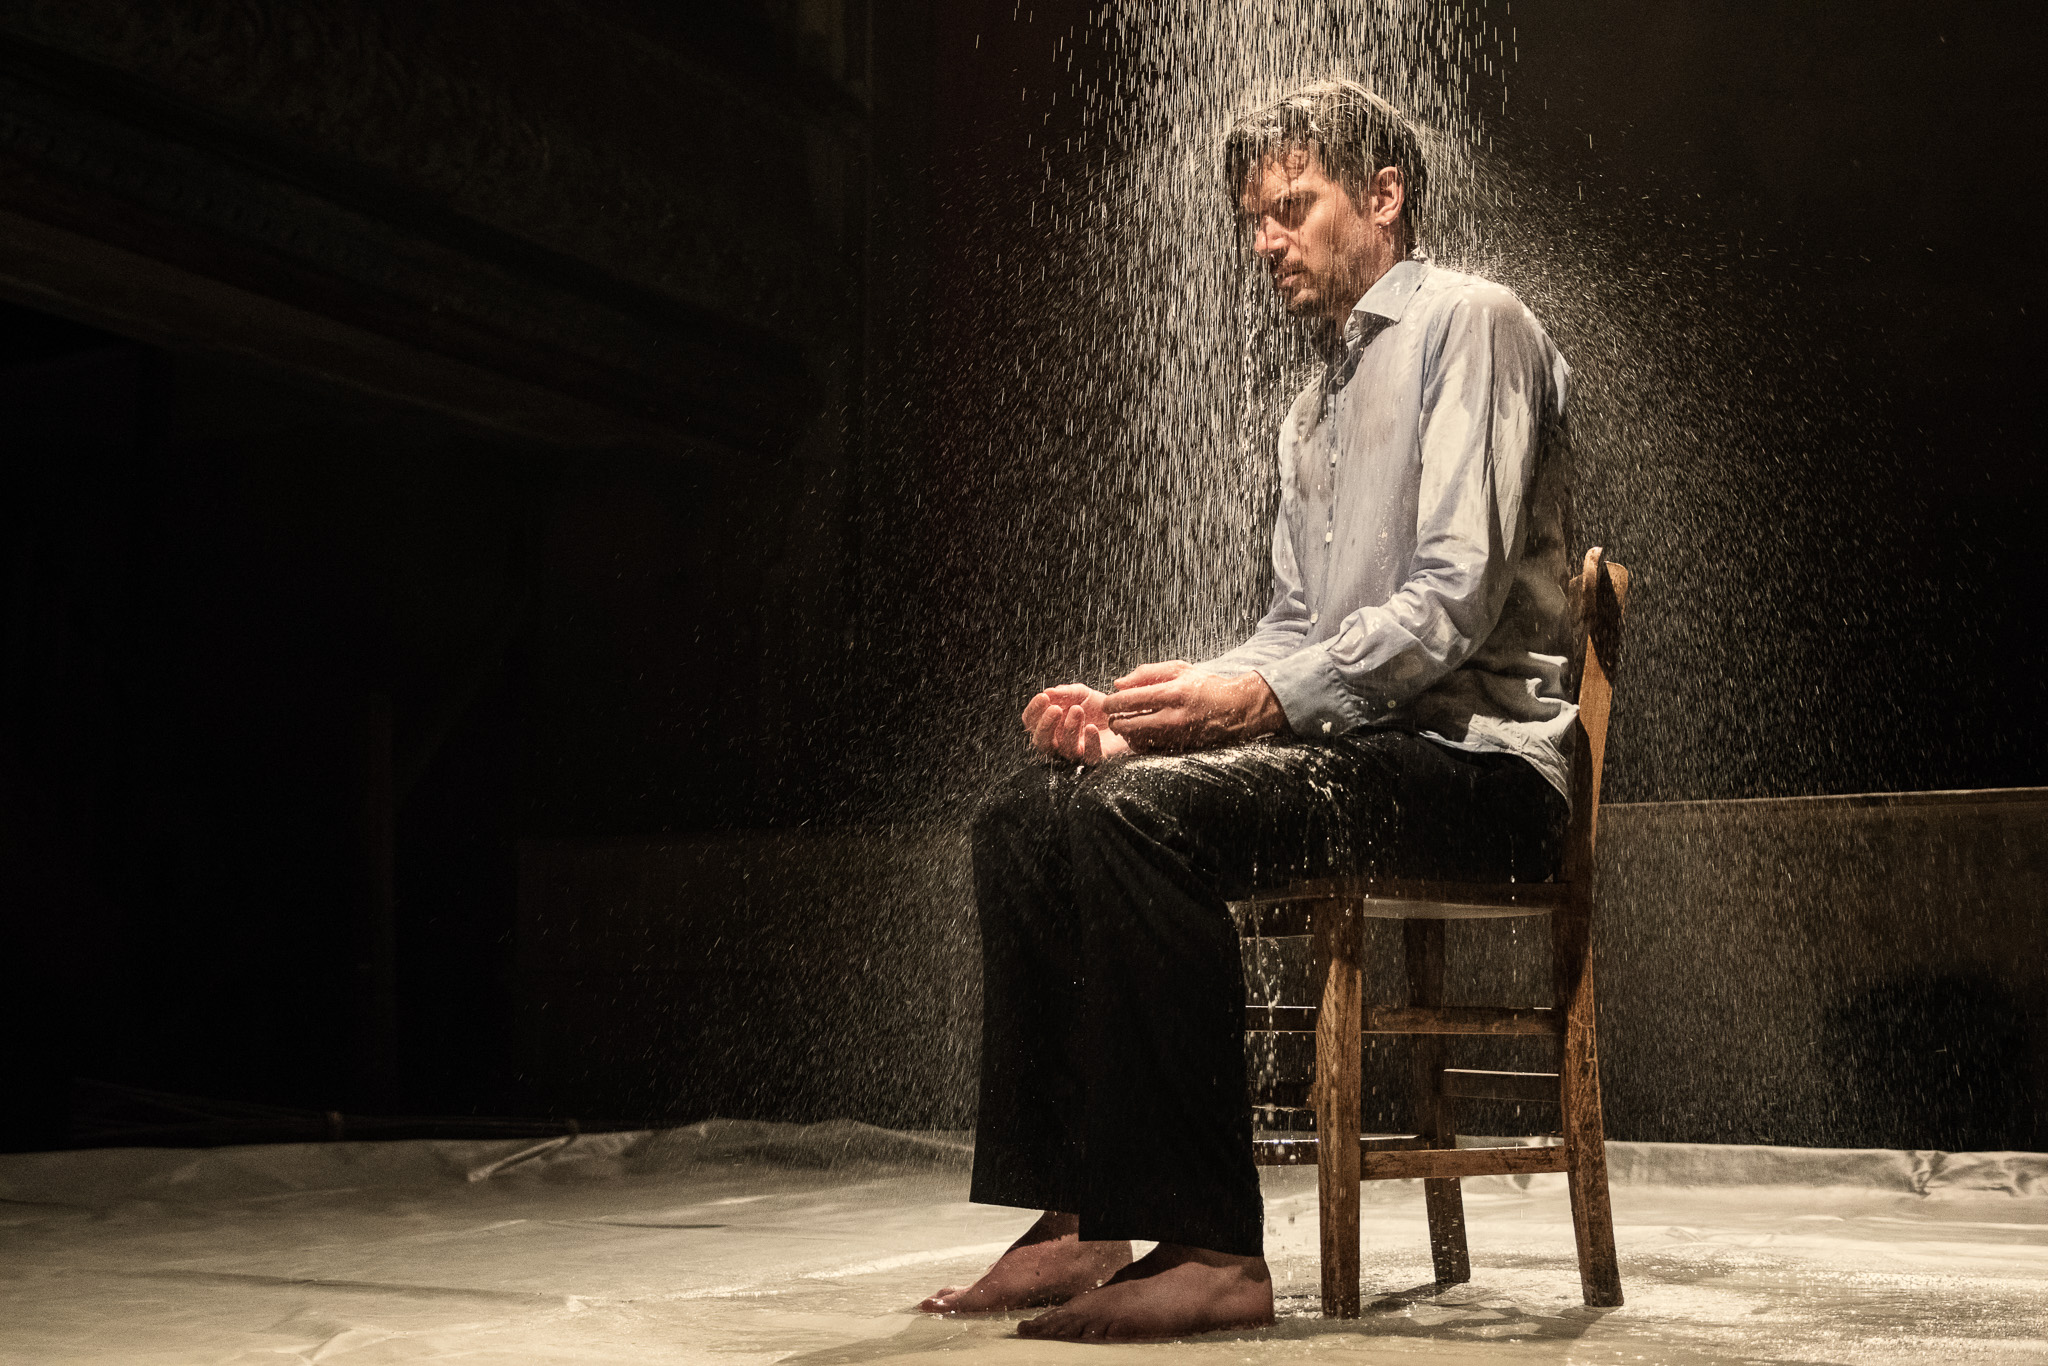 Ben fully playing his character. Thousands of litres of water to capture this image. No chance to repeat.